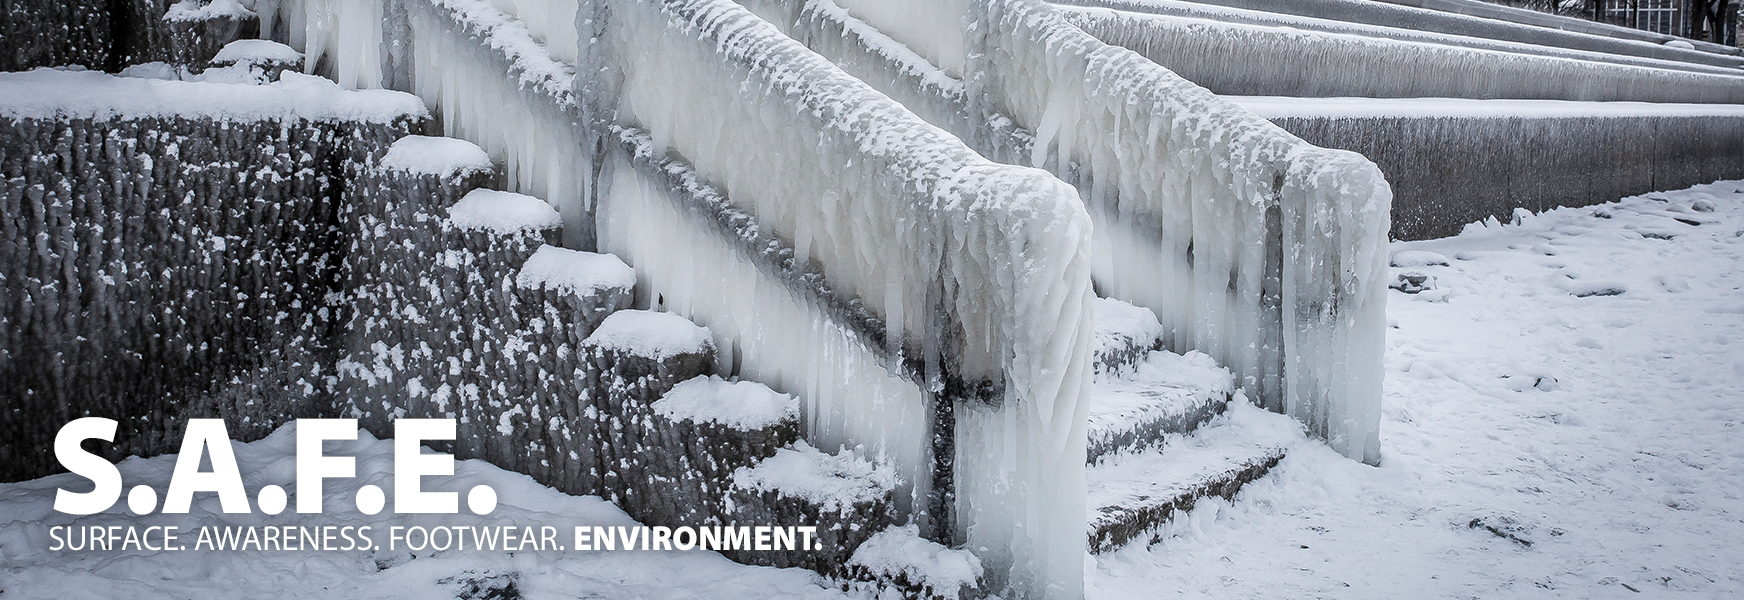 Staircase covered in ice